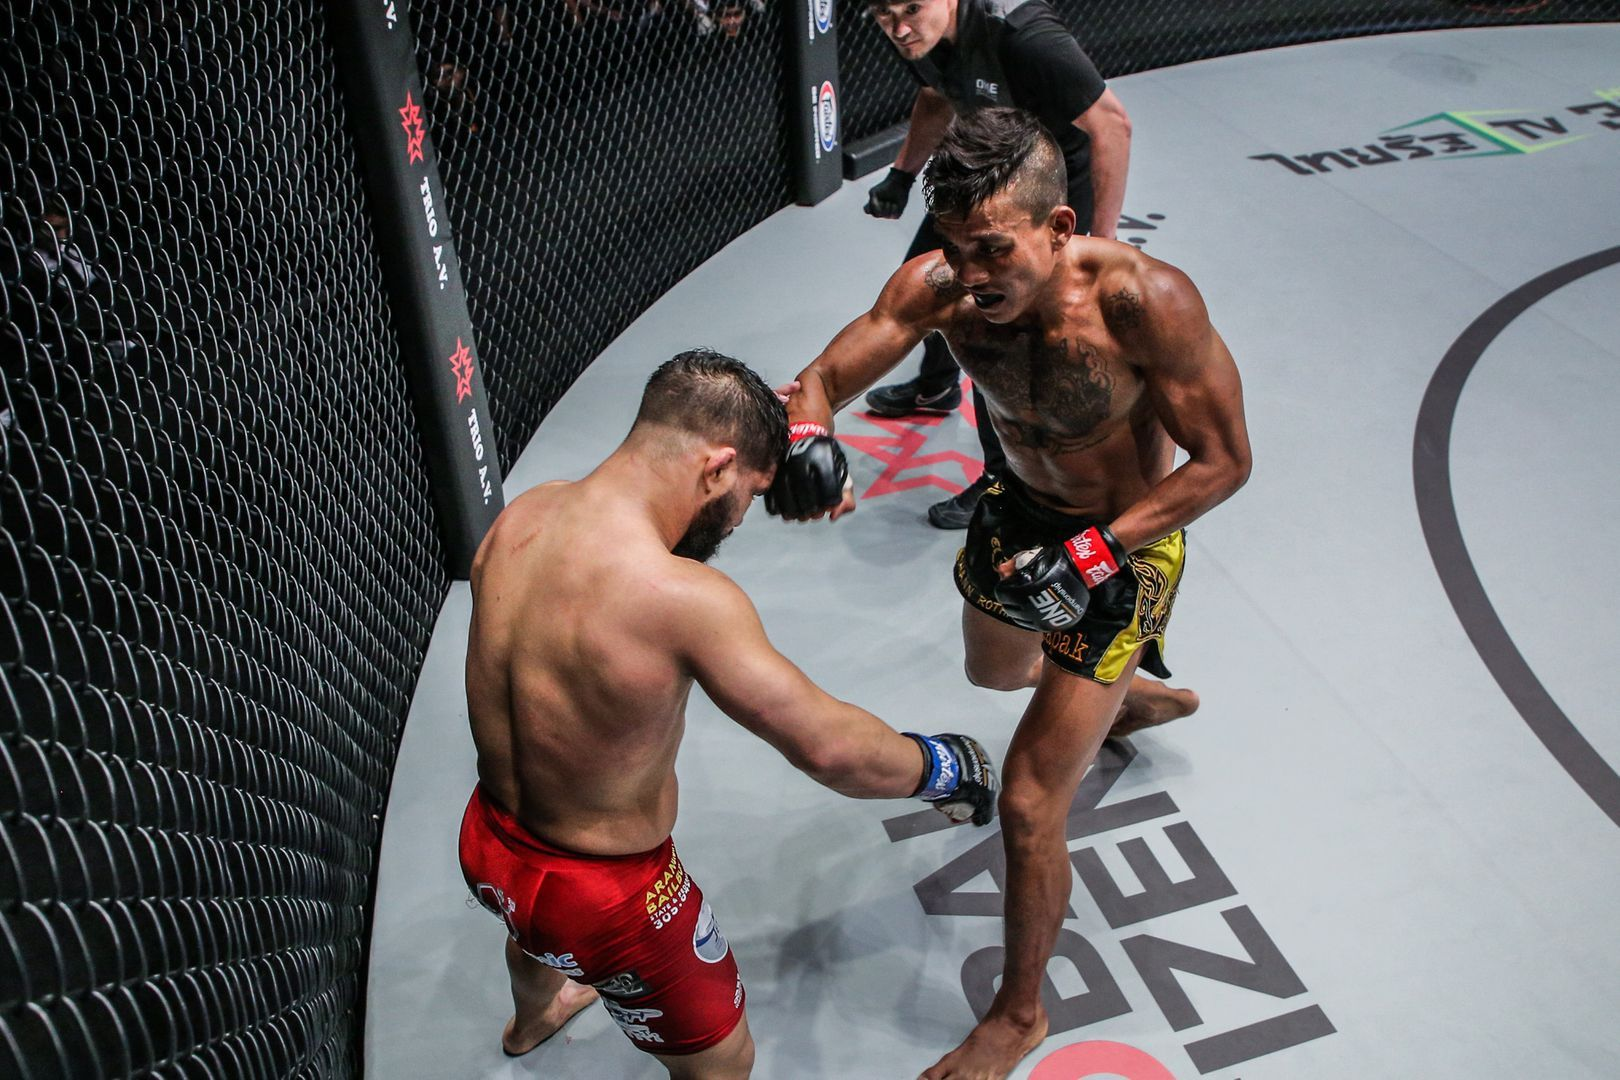 Chan Rothana defeats Gustavo Balart via unanimous decision at ONE: DREAMS OF GOLD